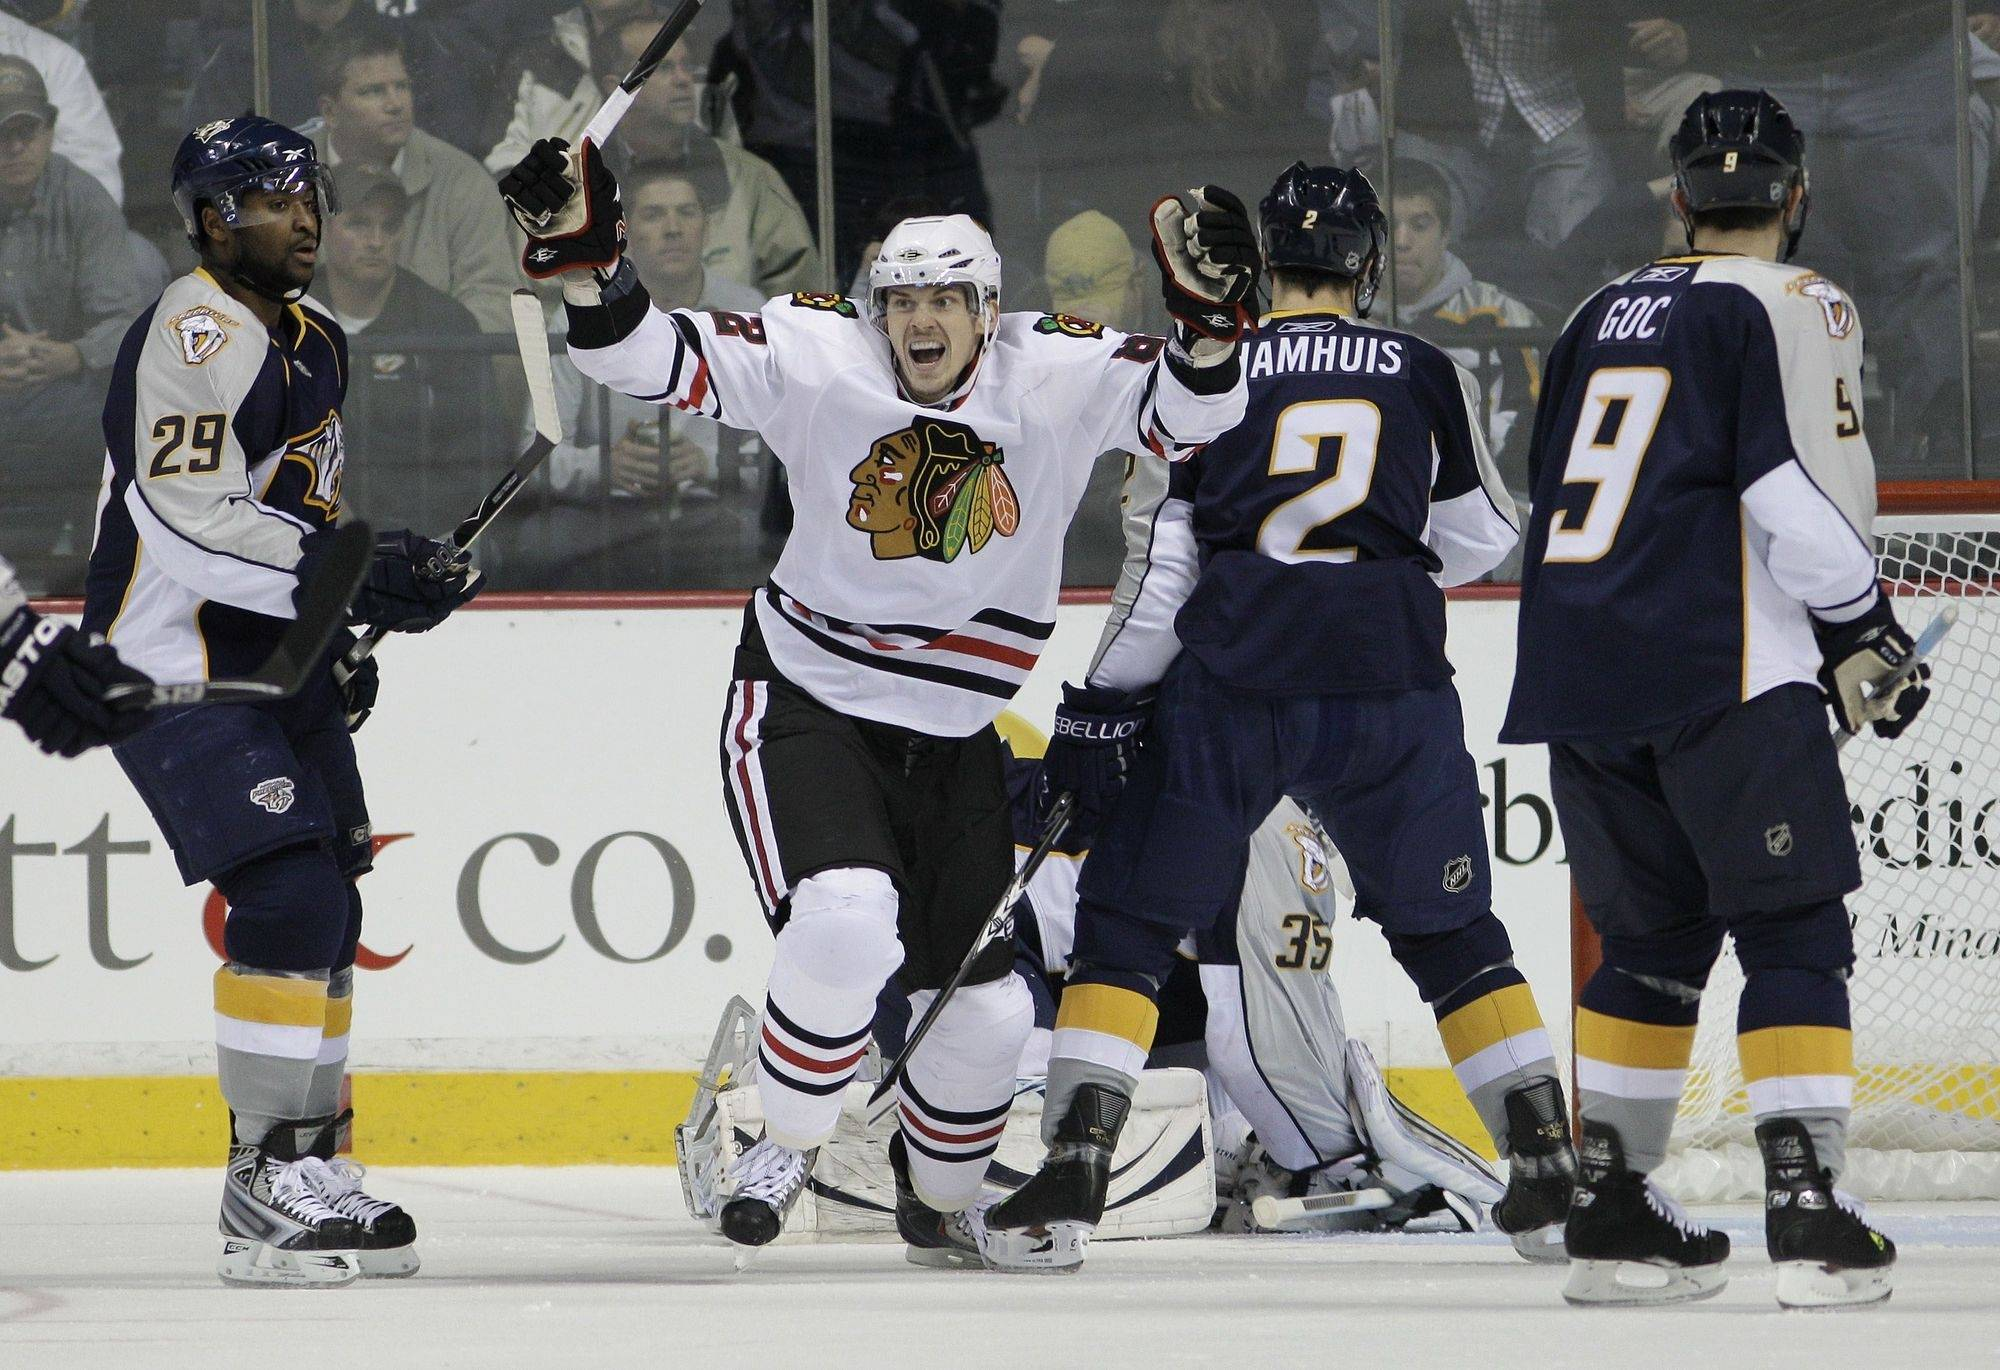 Chicago Blackhawk Tomas Kopecky, center, celebrates a goal by teammate Duncan Keith, not shown, during the first period. Defending for the Predators are Joel Ward (29), Dan Hamhuis (2), and Marcel Goc (9).